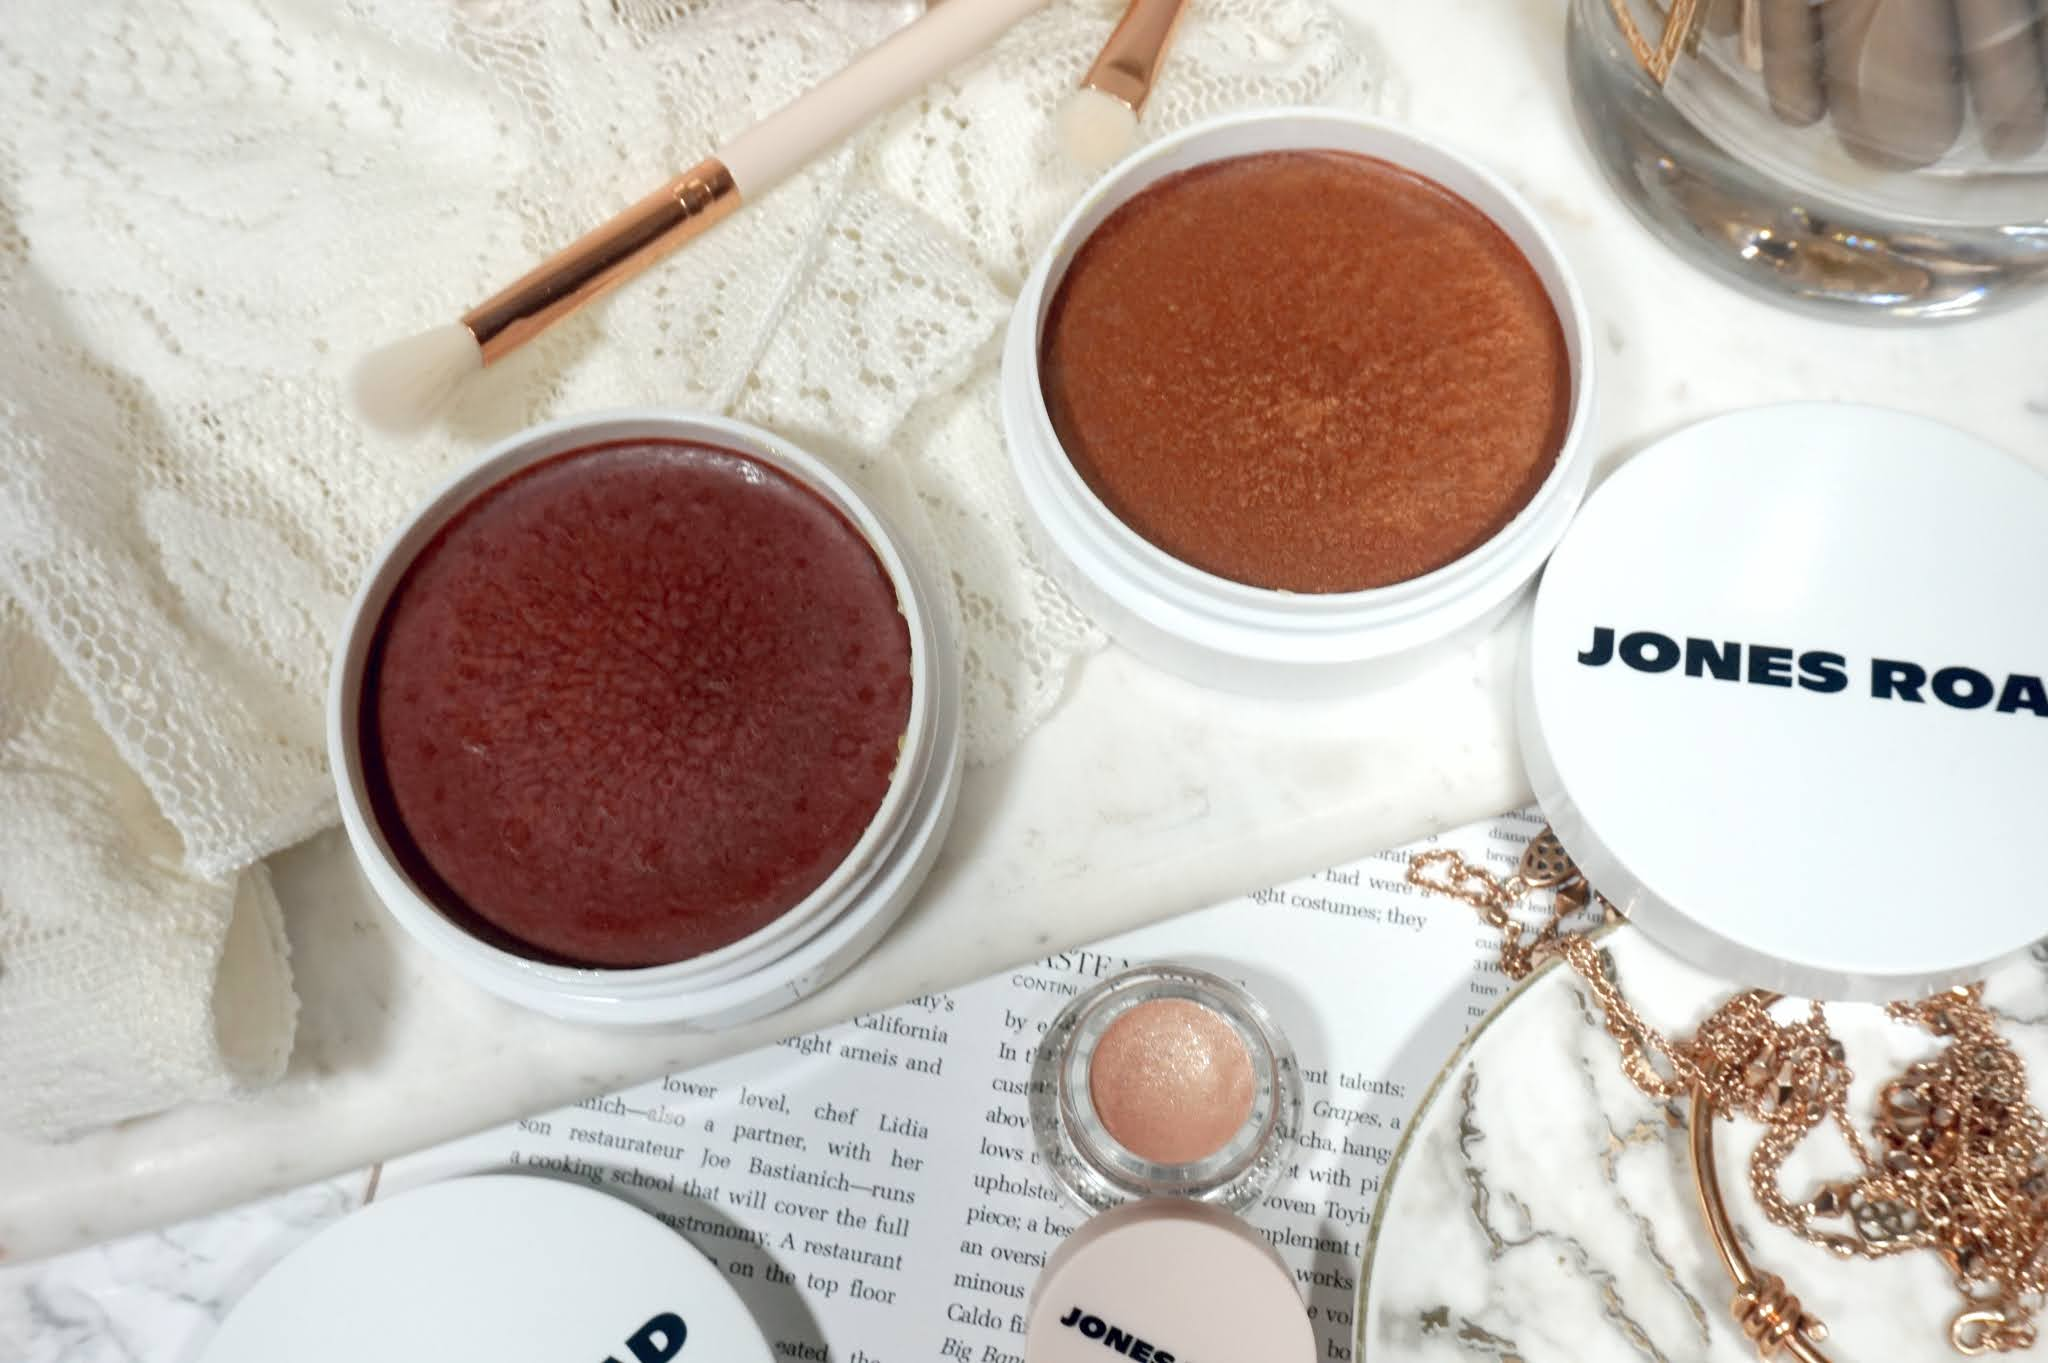 Jones Road Beauty Miracle Balm All-Over Glow Review and Swatches